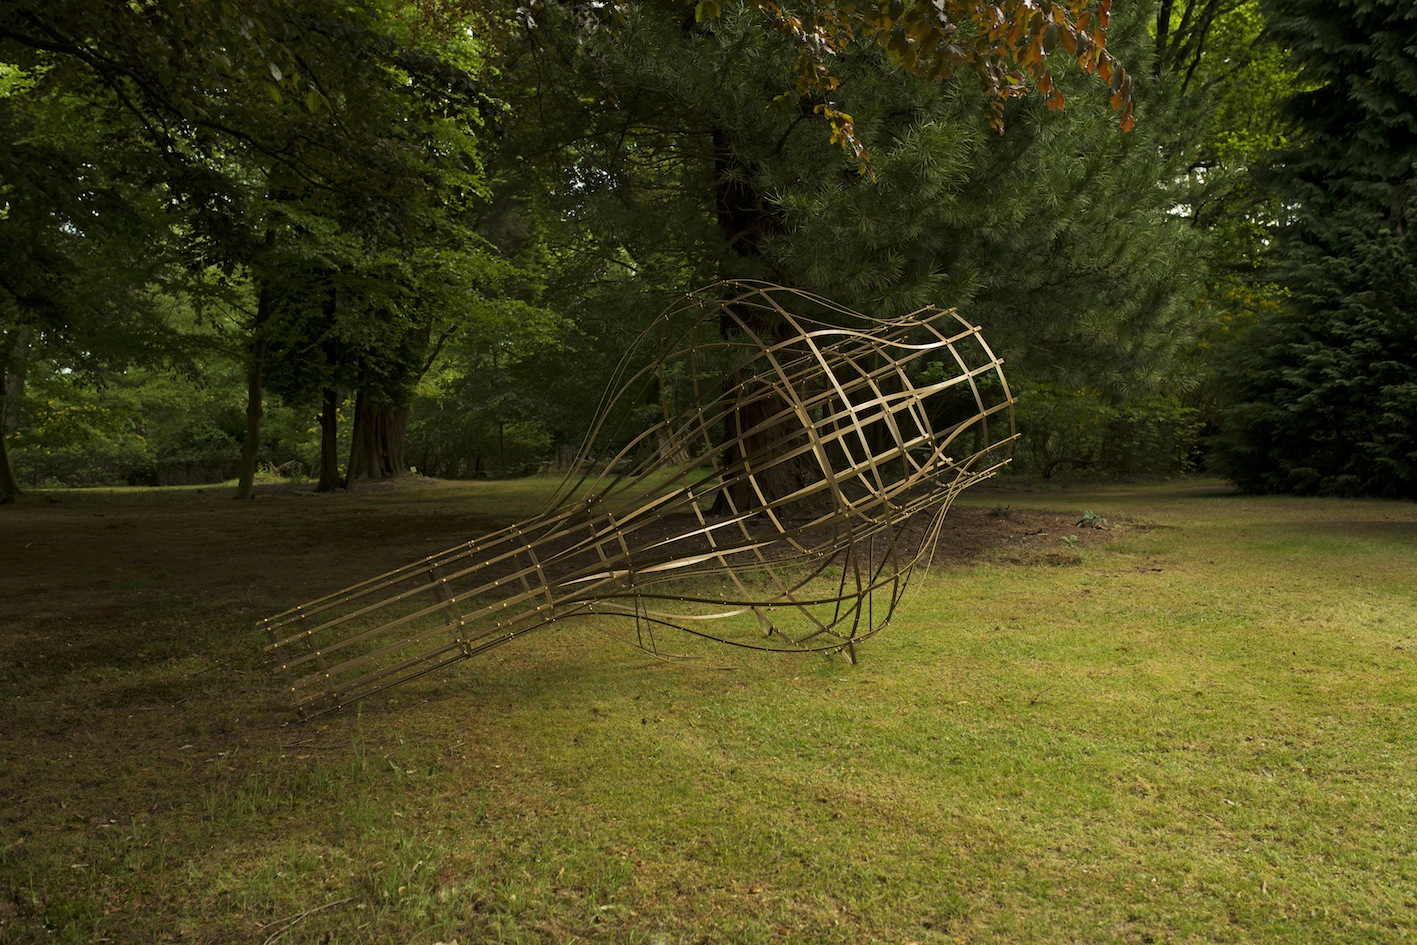 They are the mysteries and these are the traps of the mysteries   Solid Brass  335 x 180 x 180 cm